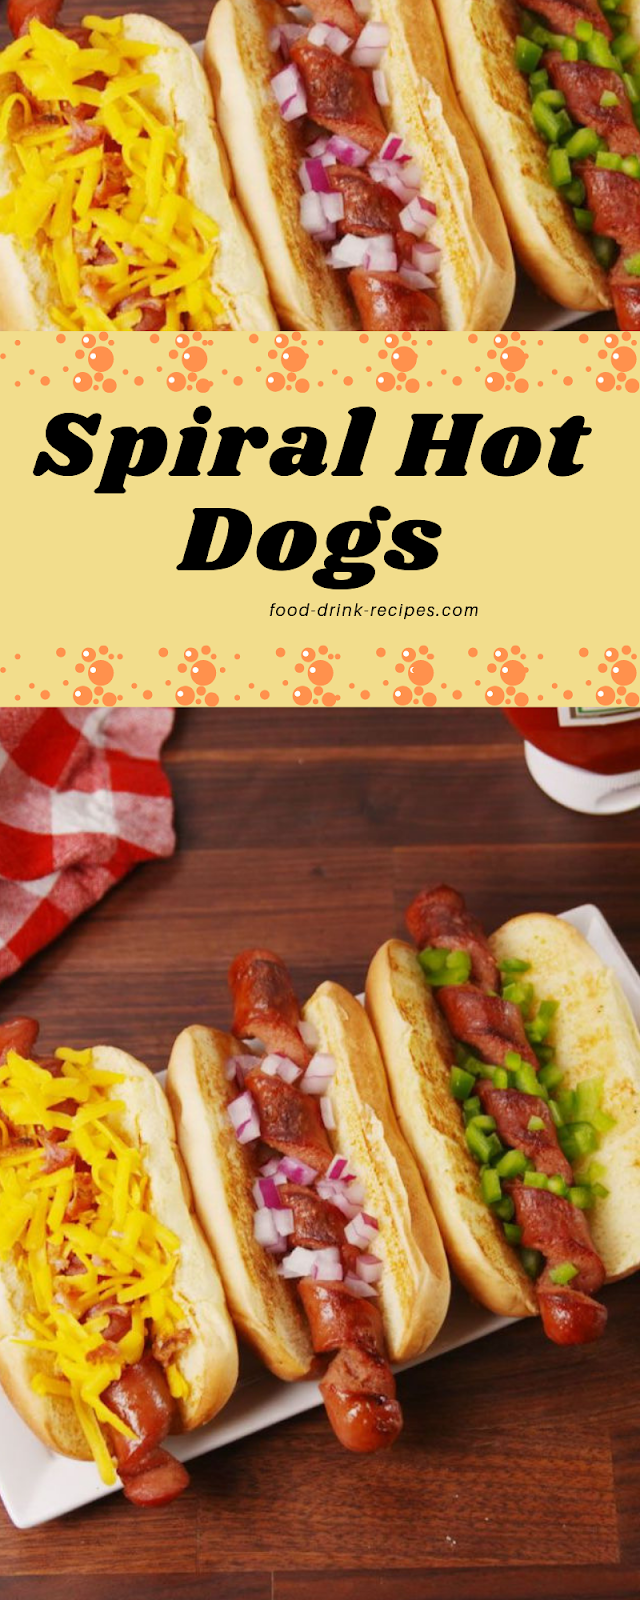 Spiral Hot Dogs  - food-drink-recipes.com